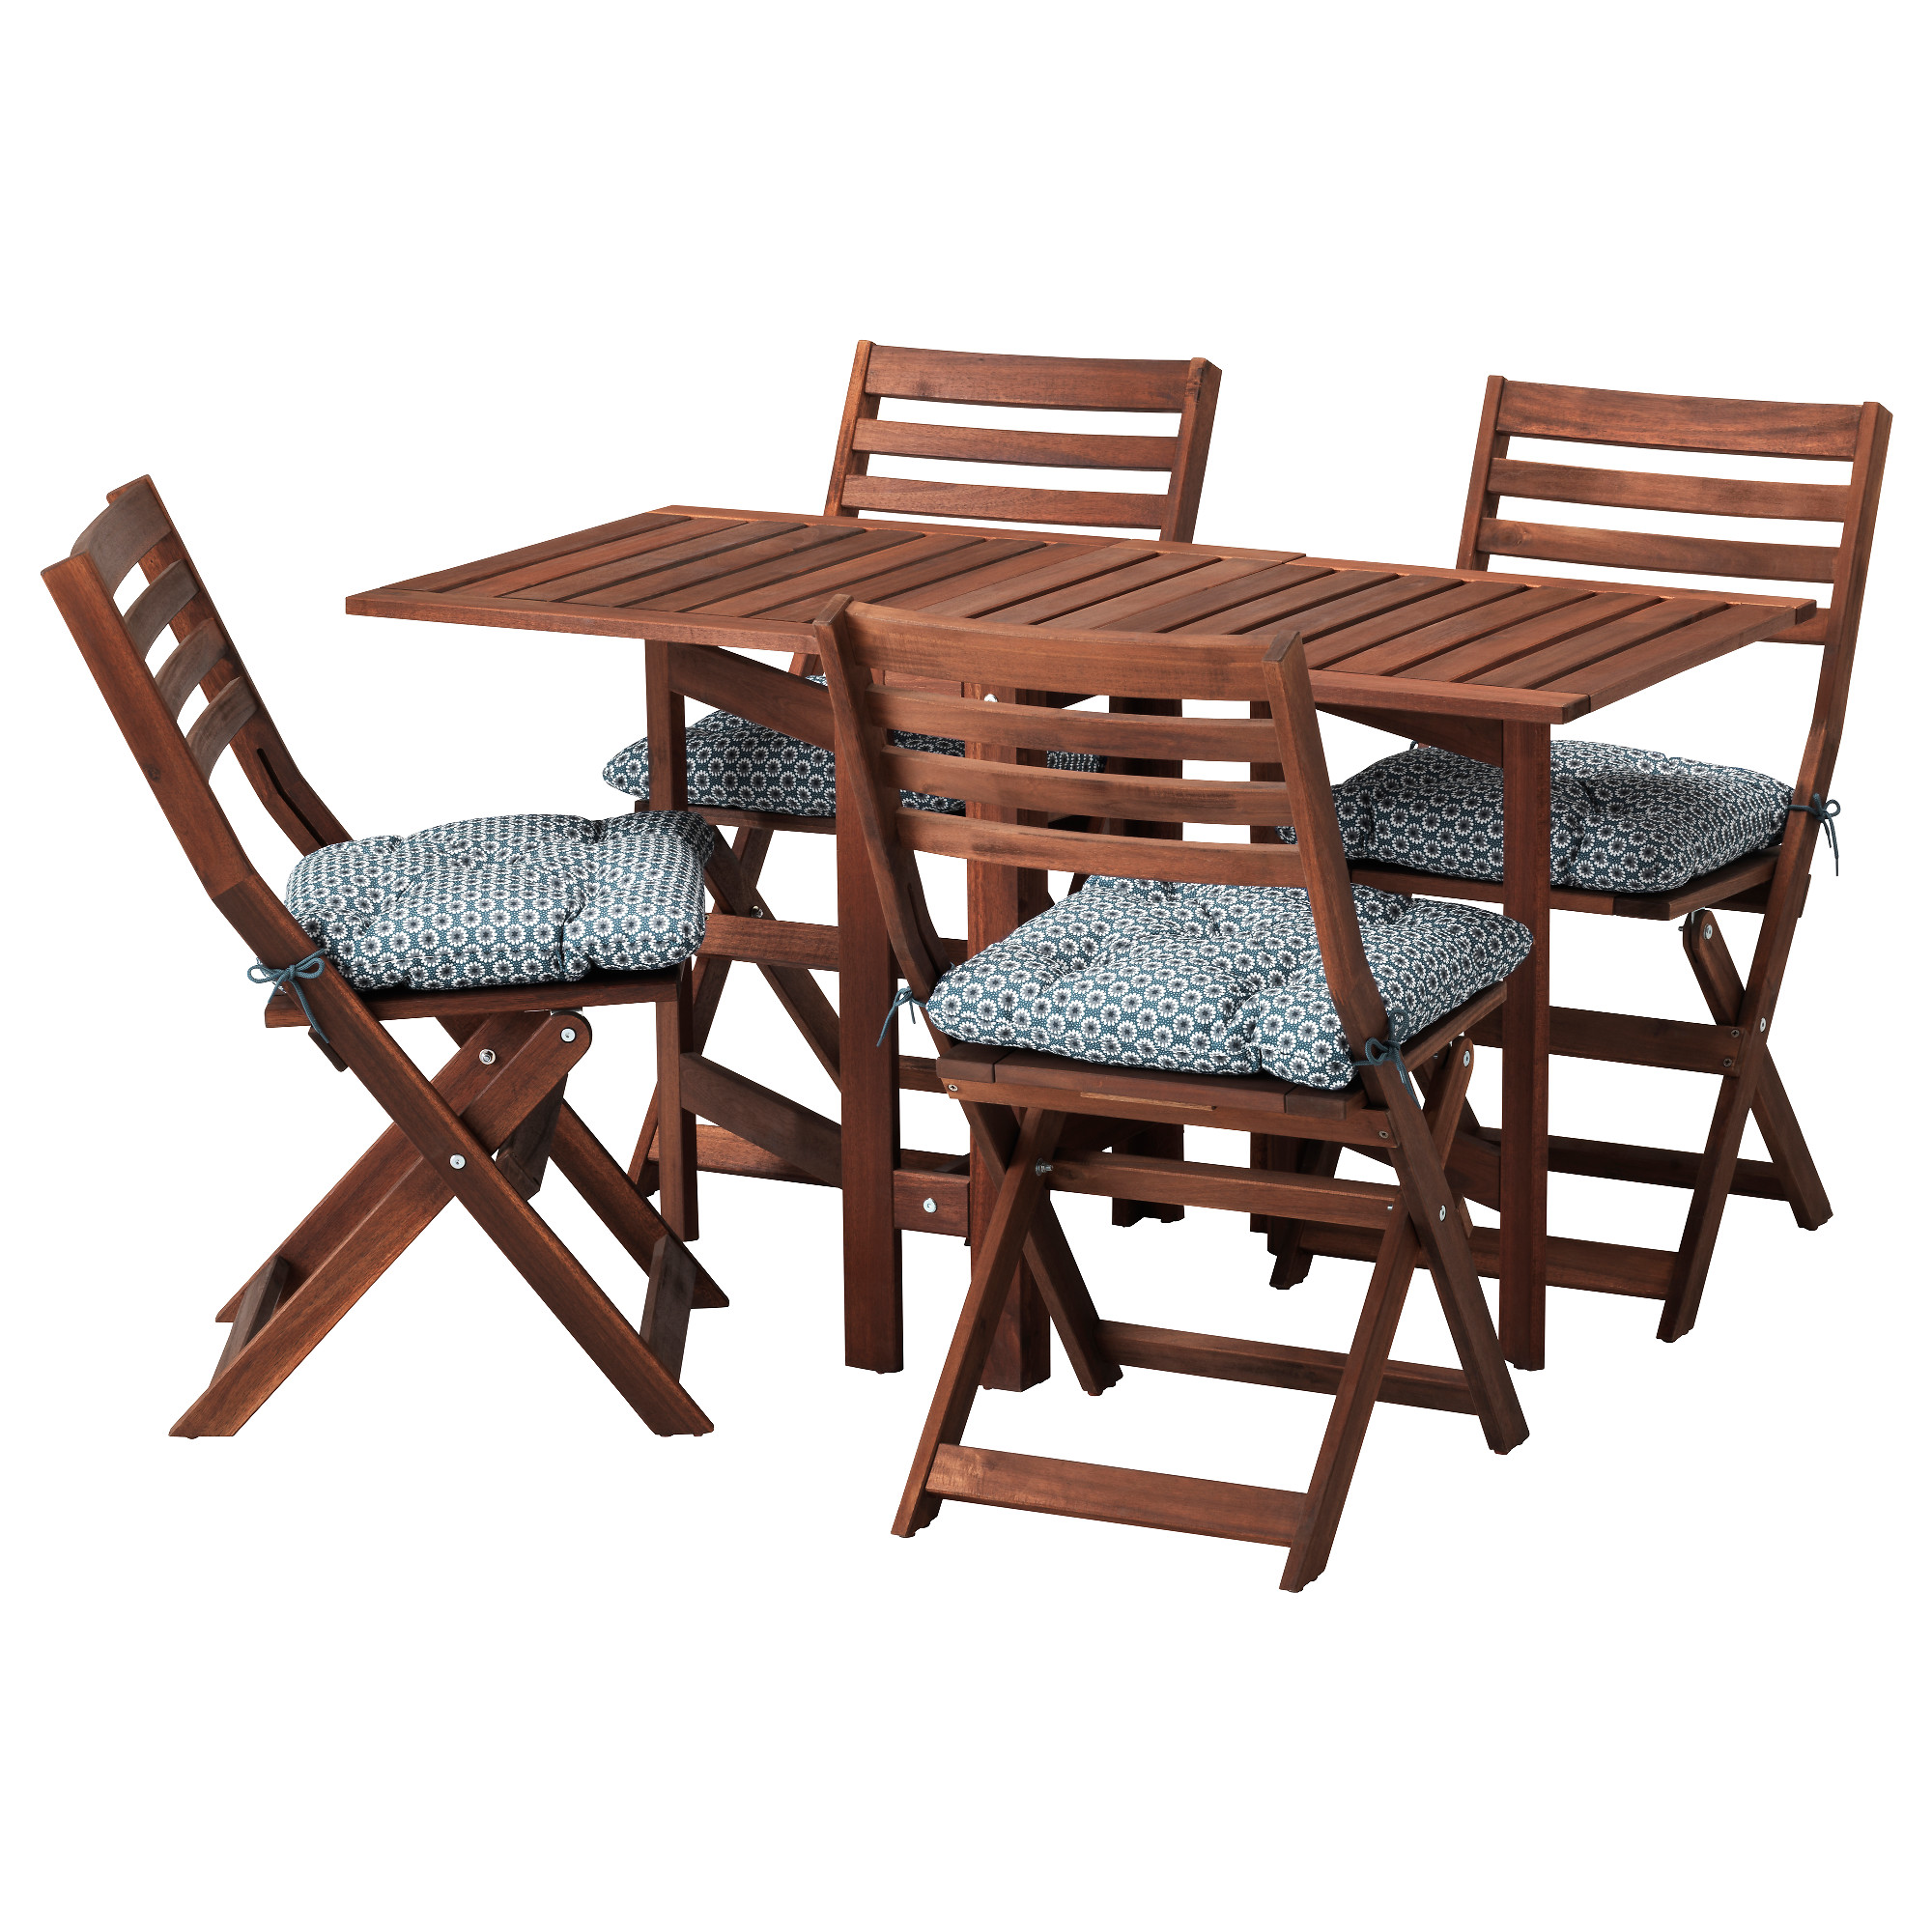 Genial ÄPPLARÖ Table And 4 Folding Chairs, Outdoor   Äpplarö Brown Stained/Hållö  Black   IKEA